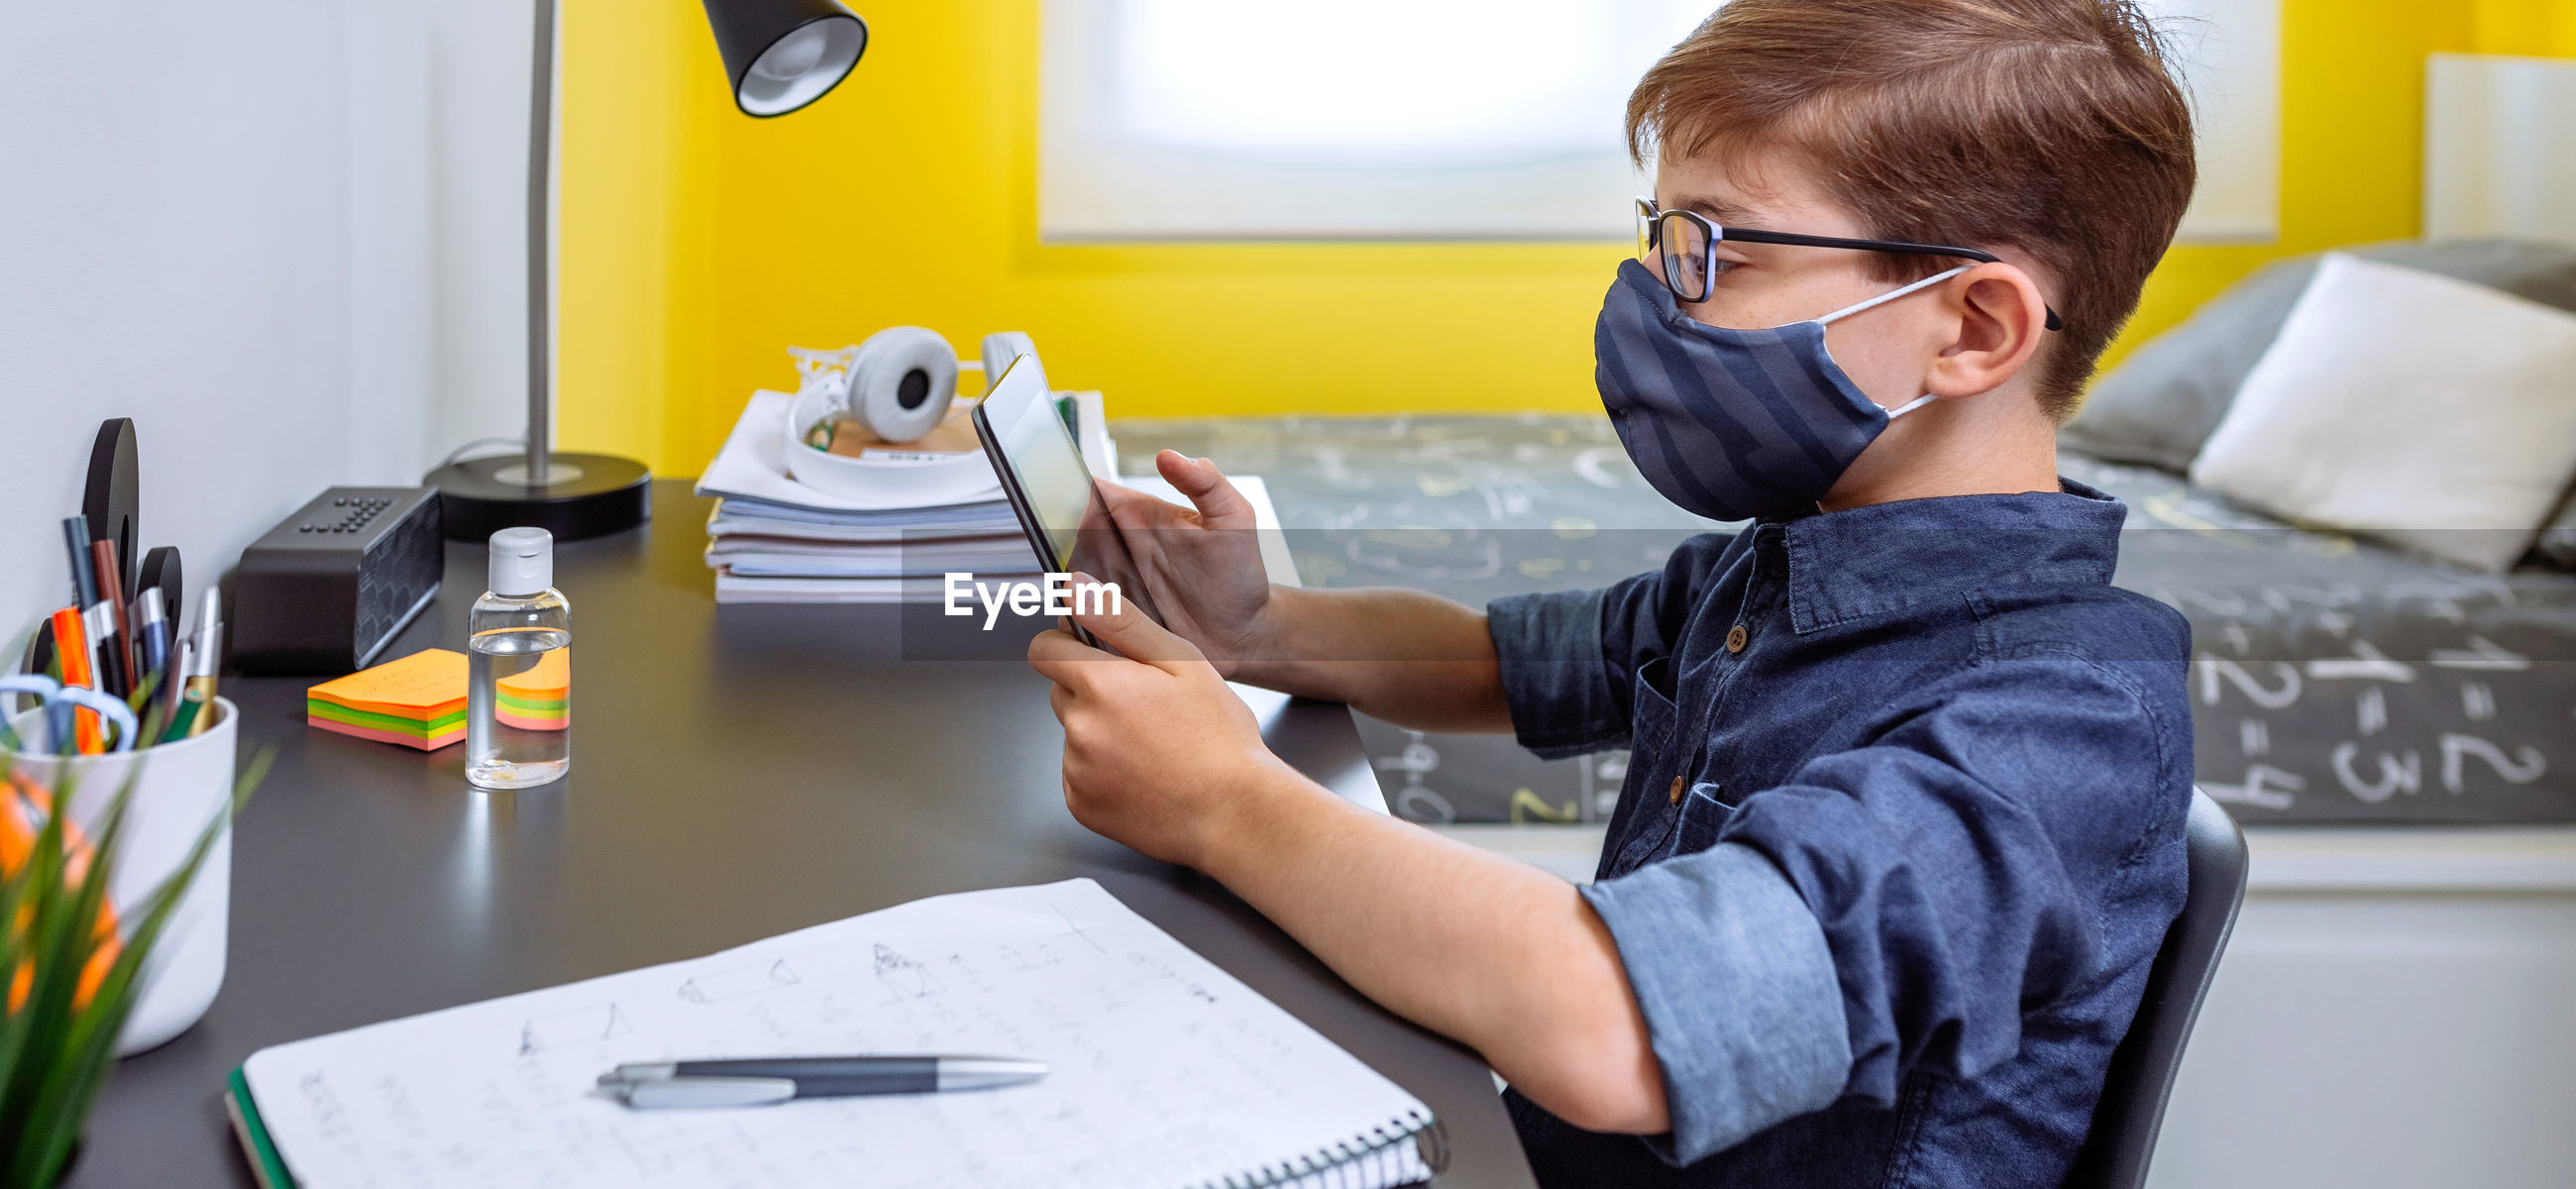 Boy wearing mask studying with digital tablet at home